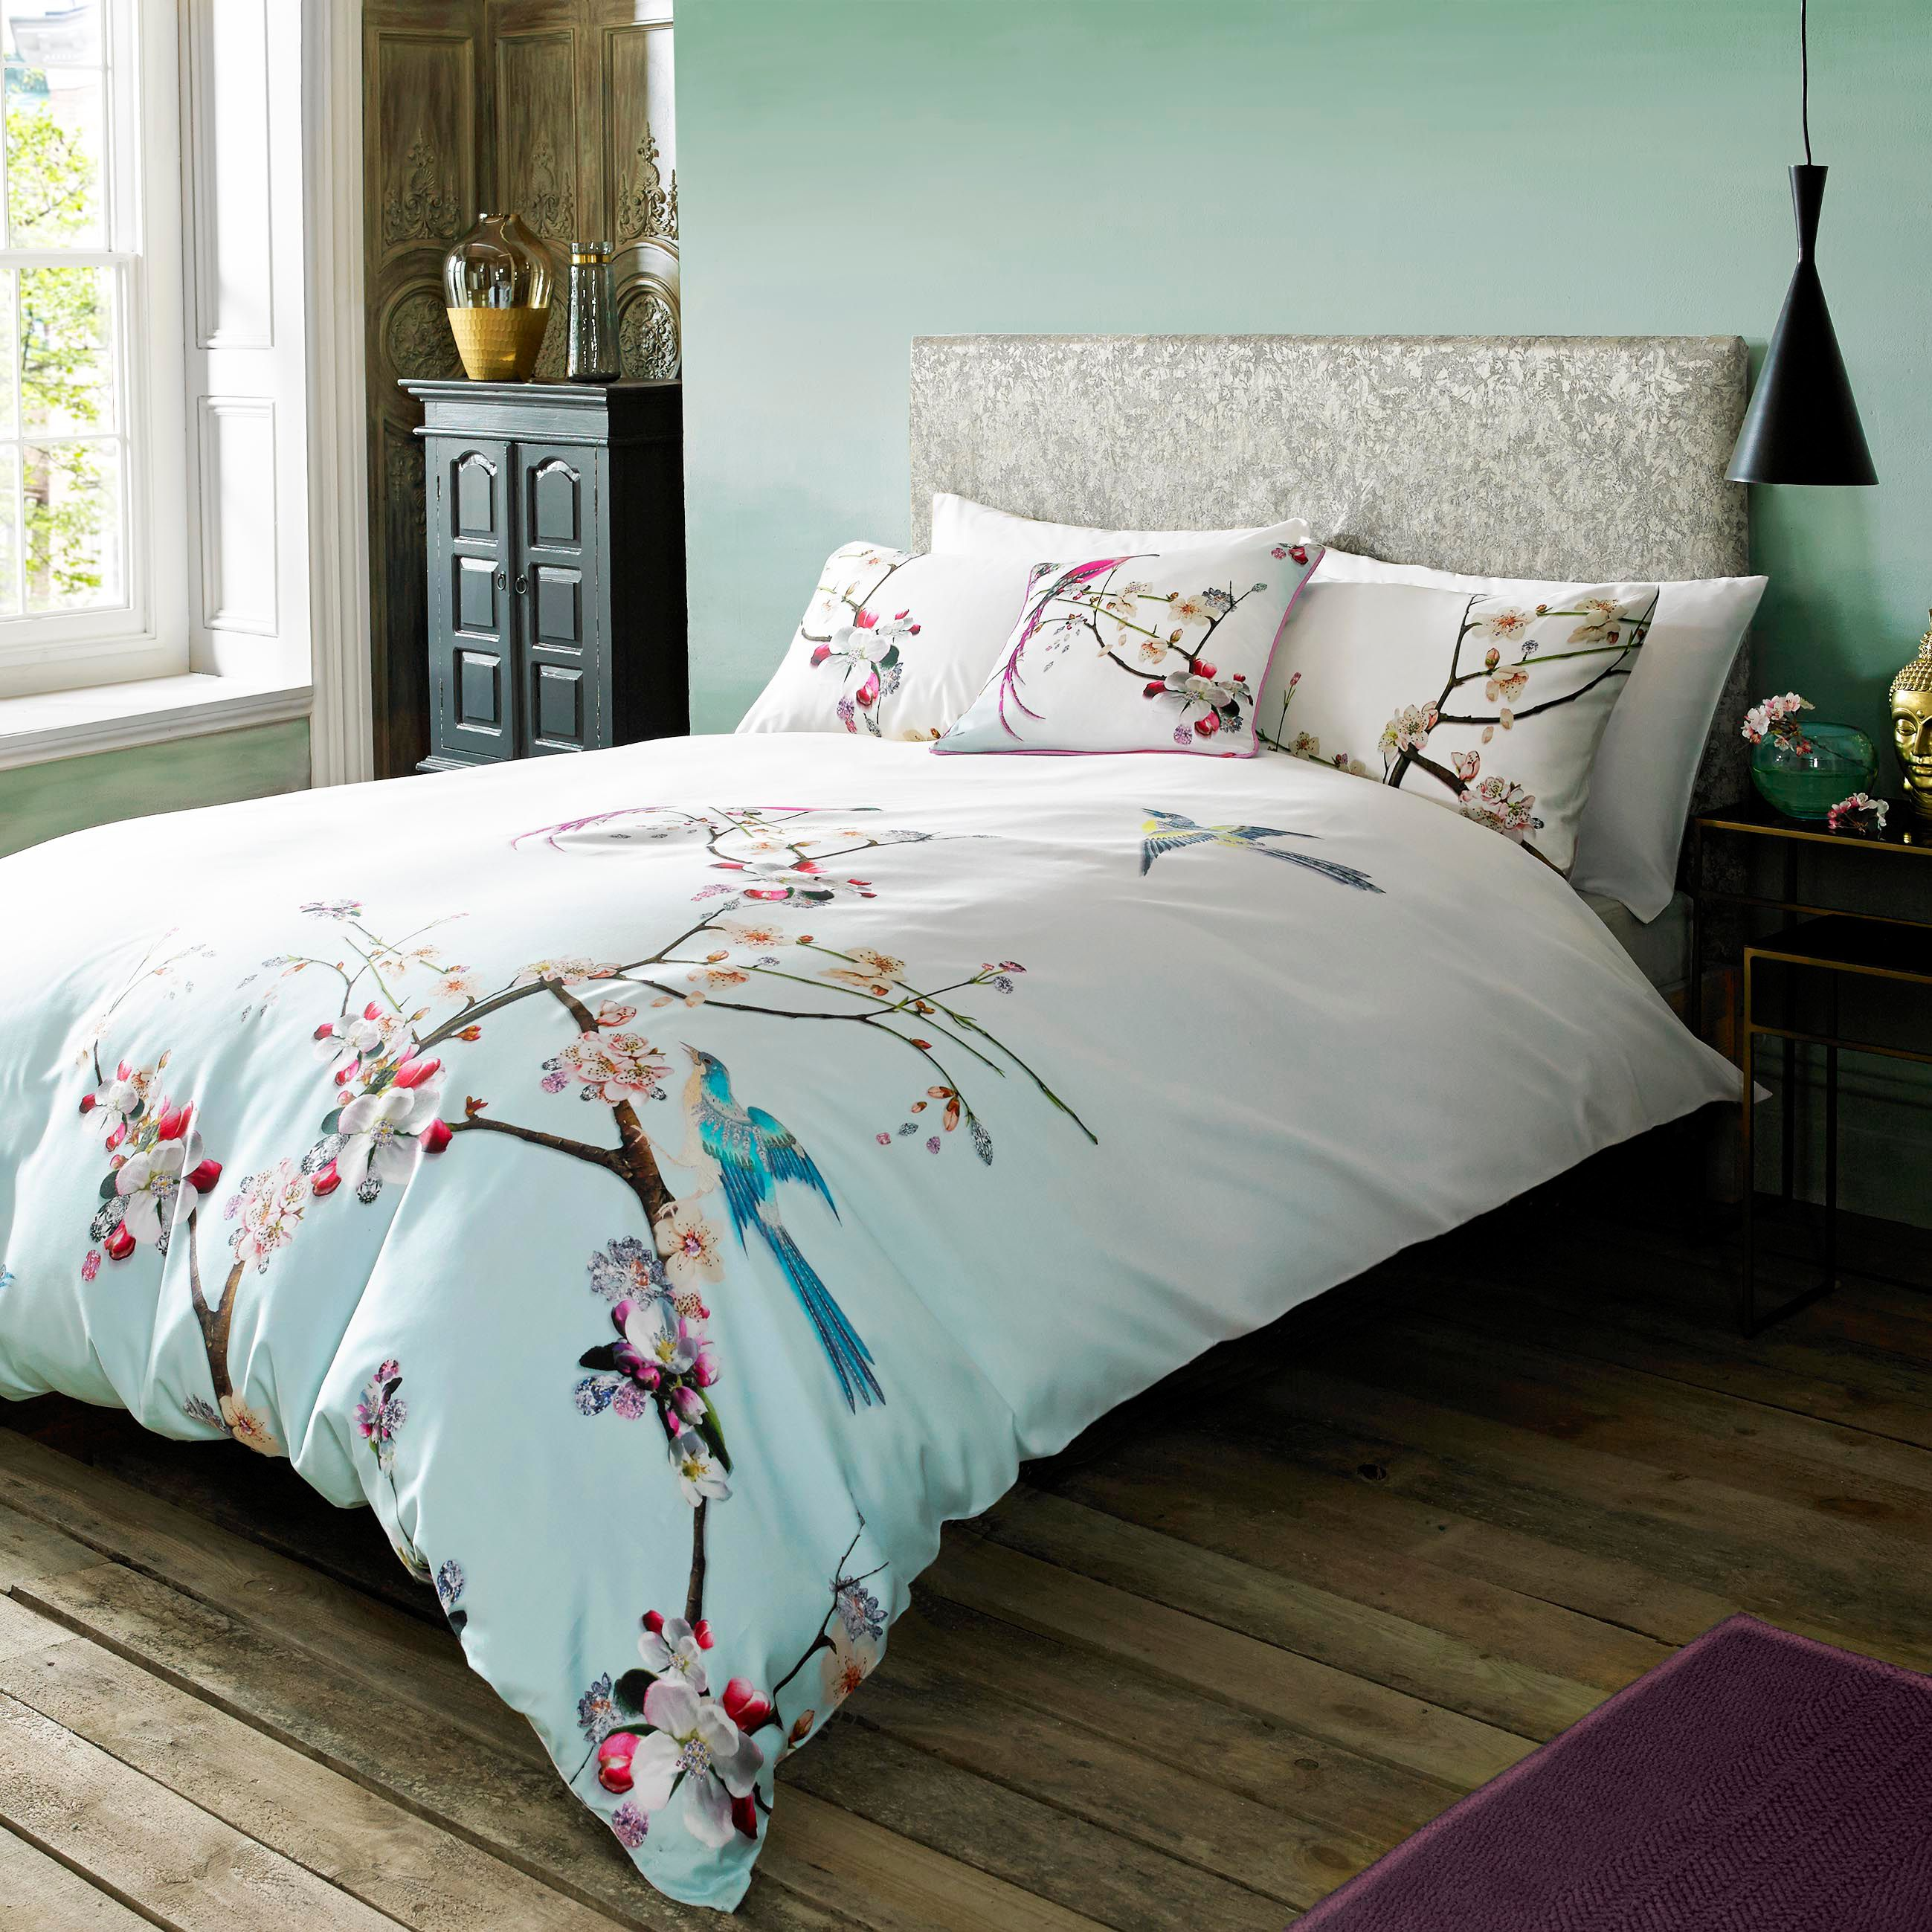 Ted Baker London bedding. Ted Baker London bedding makes U S  debut   Furniture Today